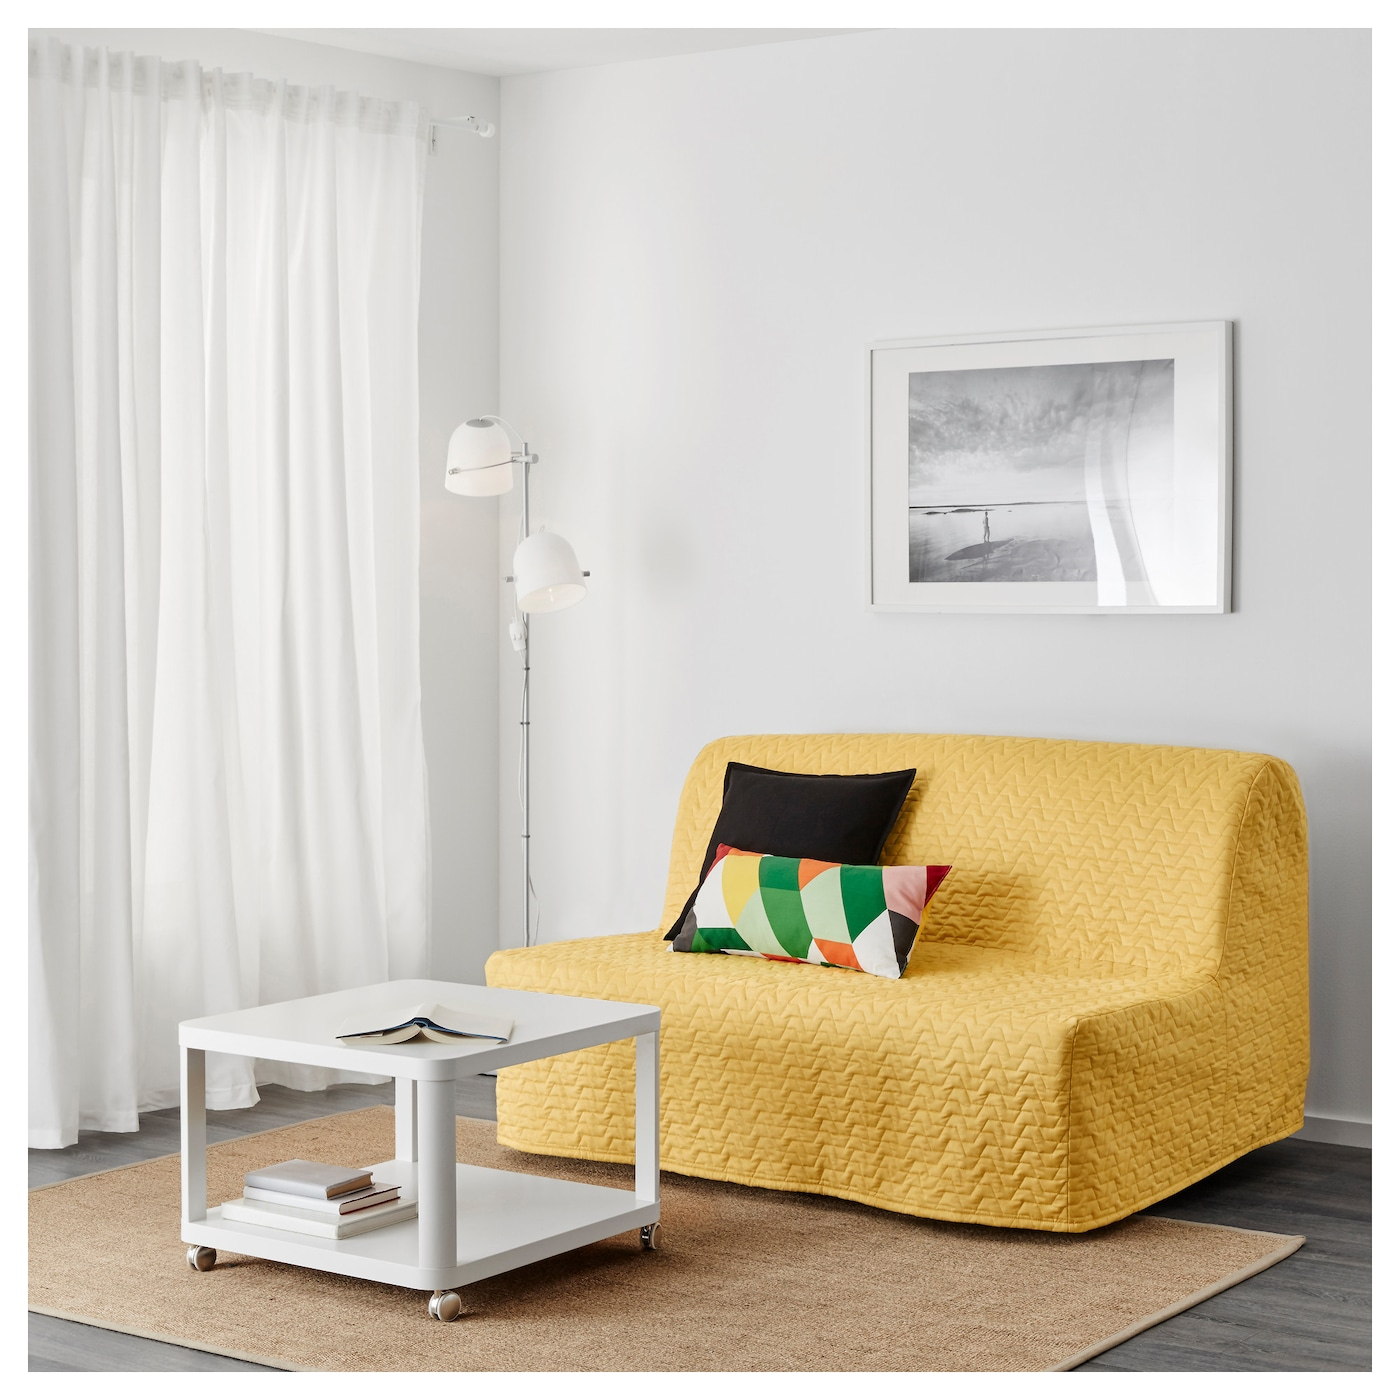 Lycksele Murbo Two Seat Sofa Bed Vallarum Yellow Ikea